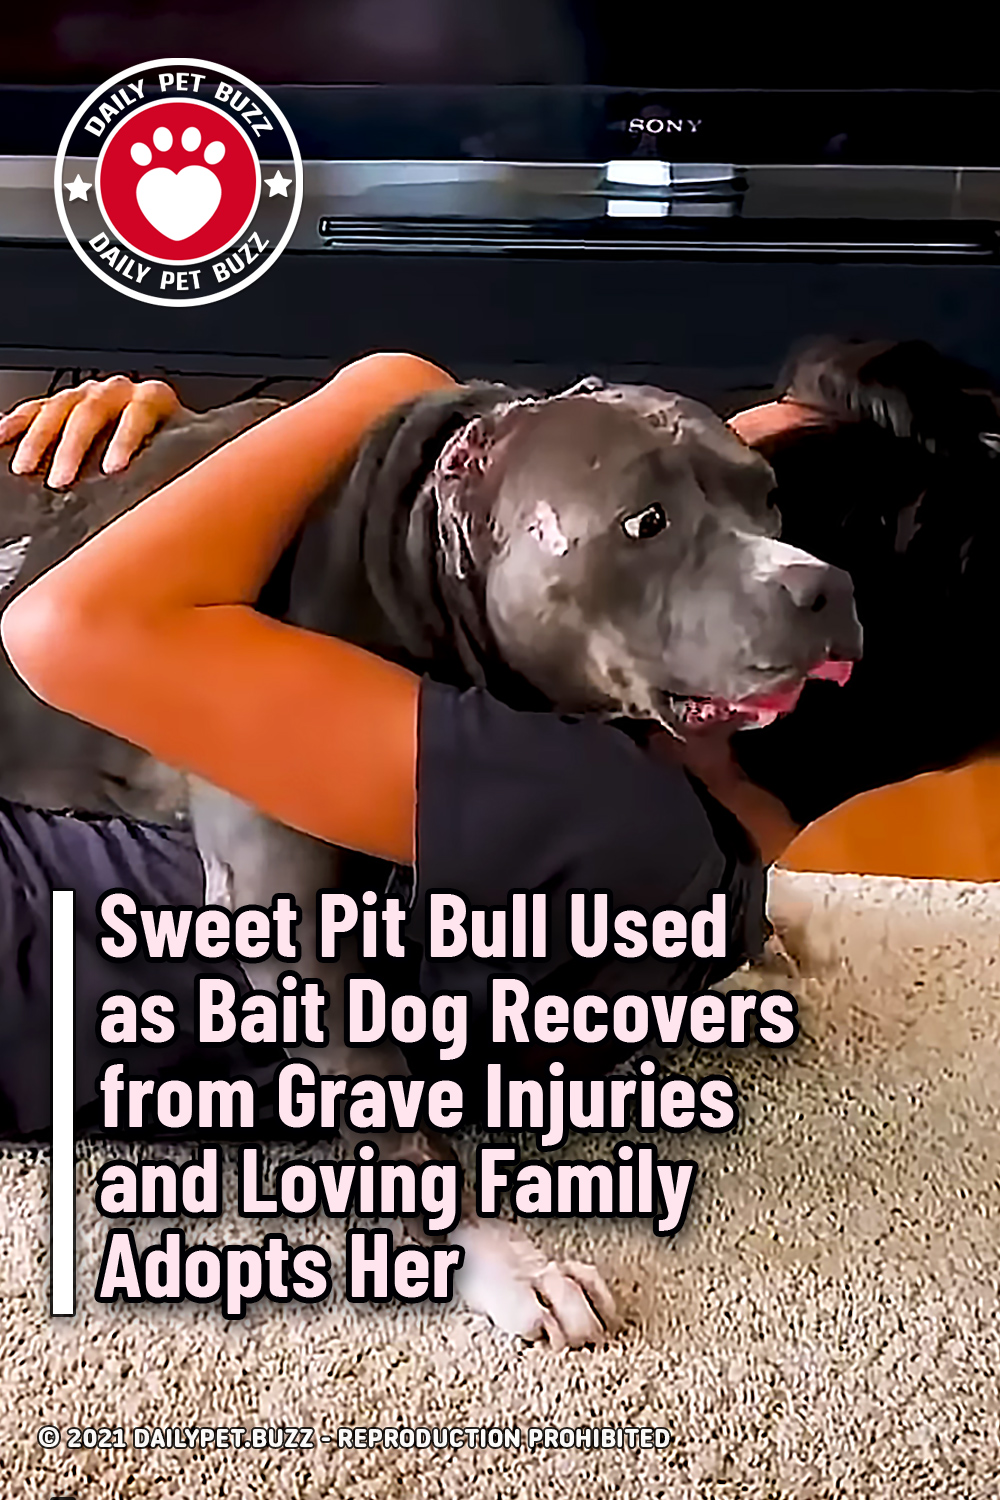 Sweet Pit Bull Used as Bait Dog Recovers from Grave Injuries and Loving Family Adopts Her